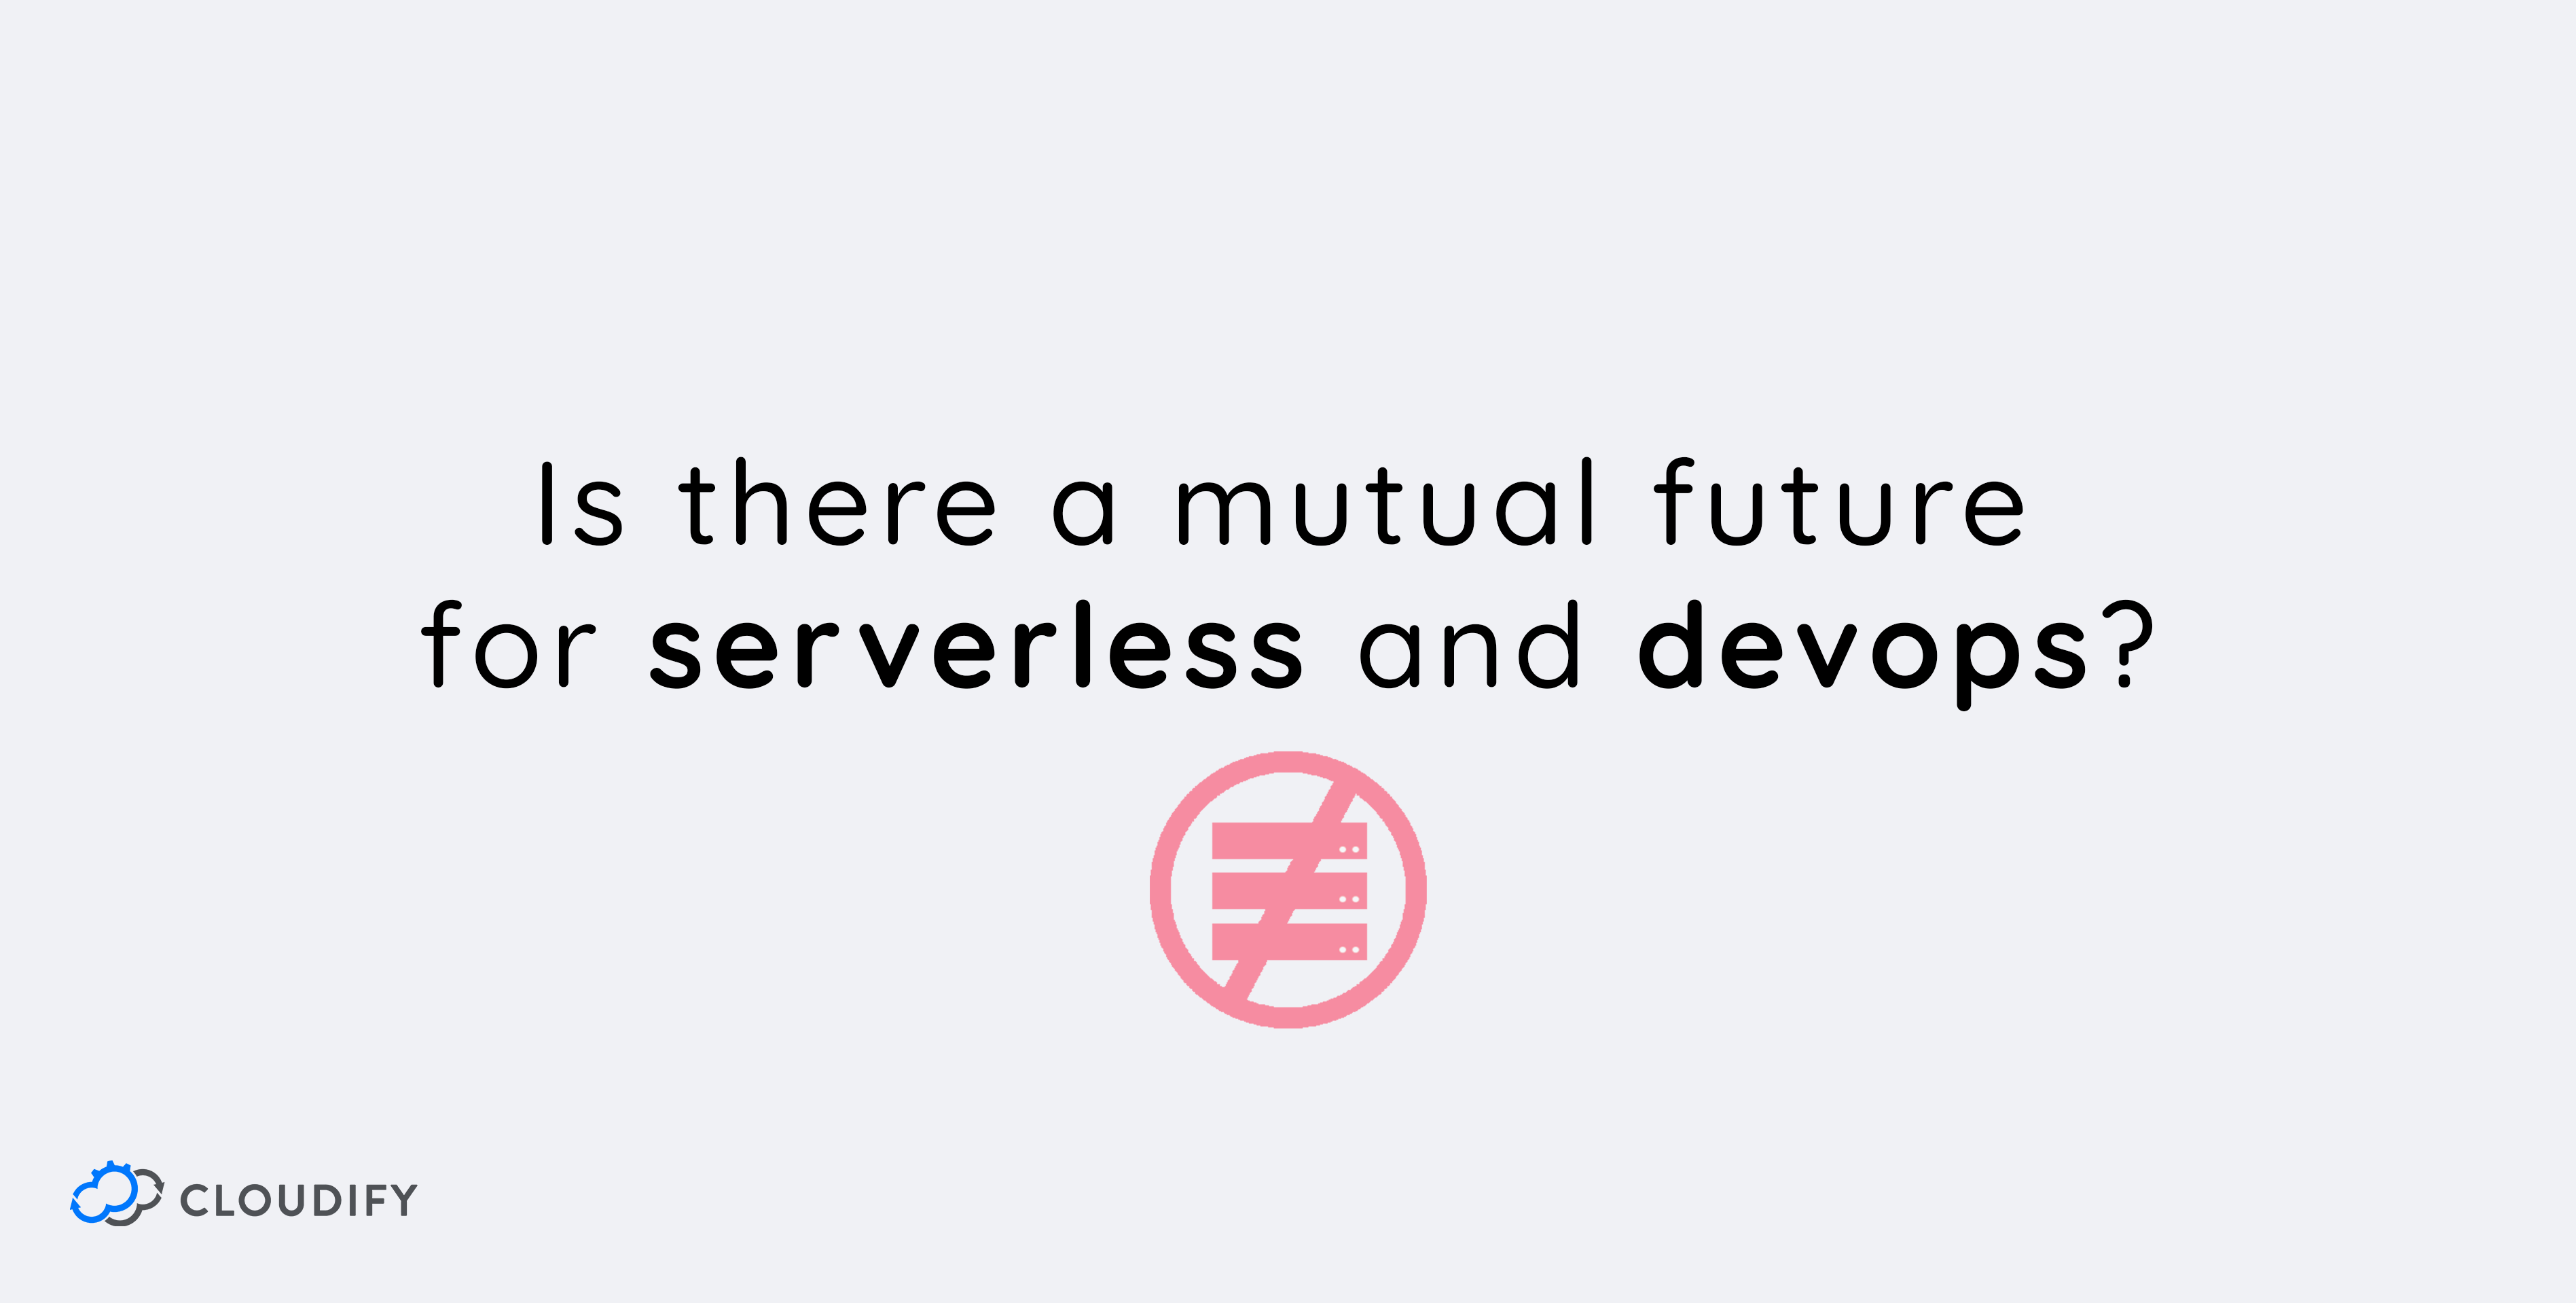 Cloudify | Is There a Mutual Future for Serverless and DevOps